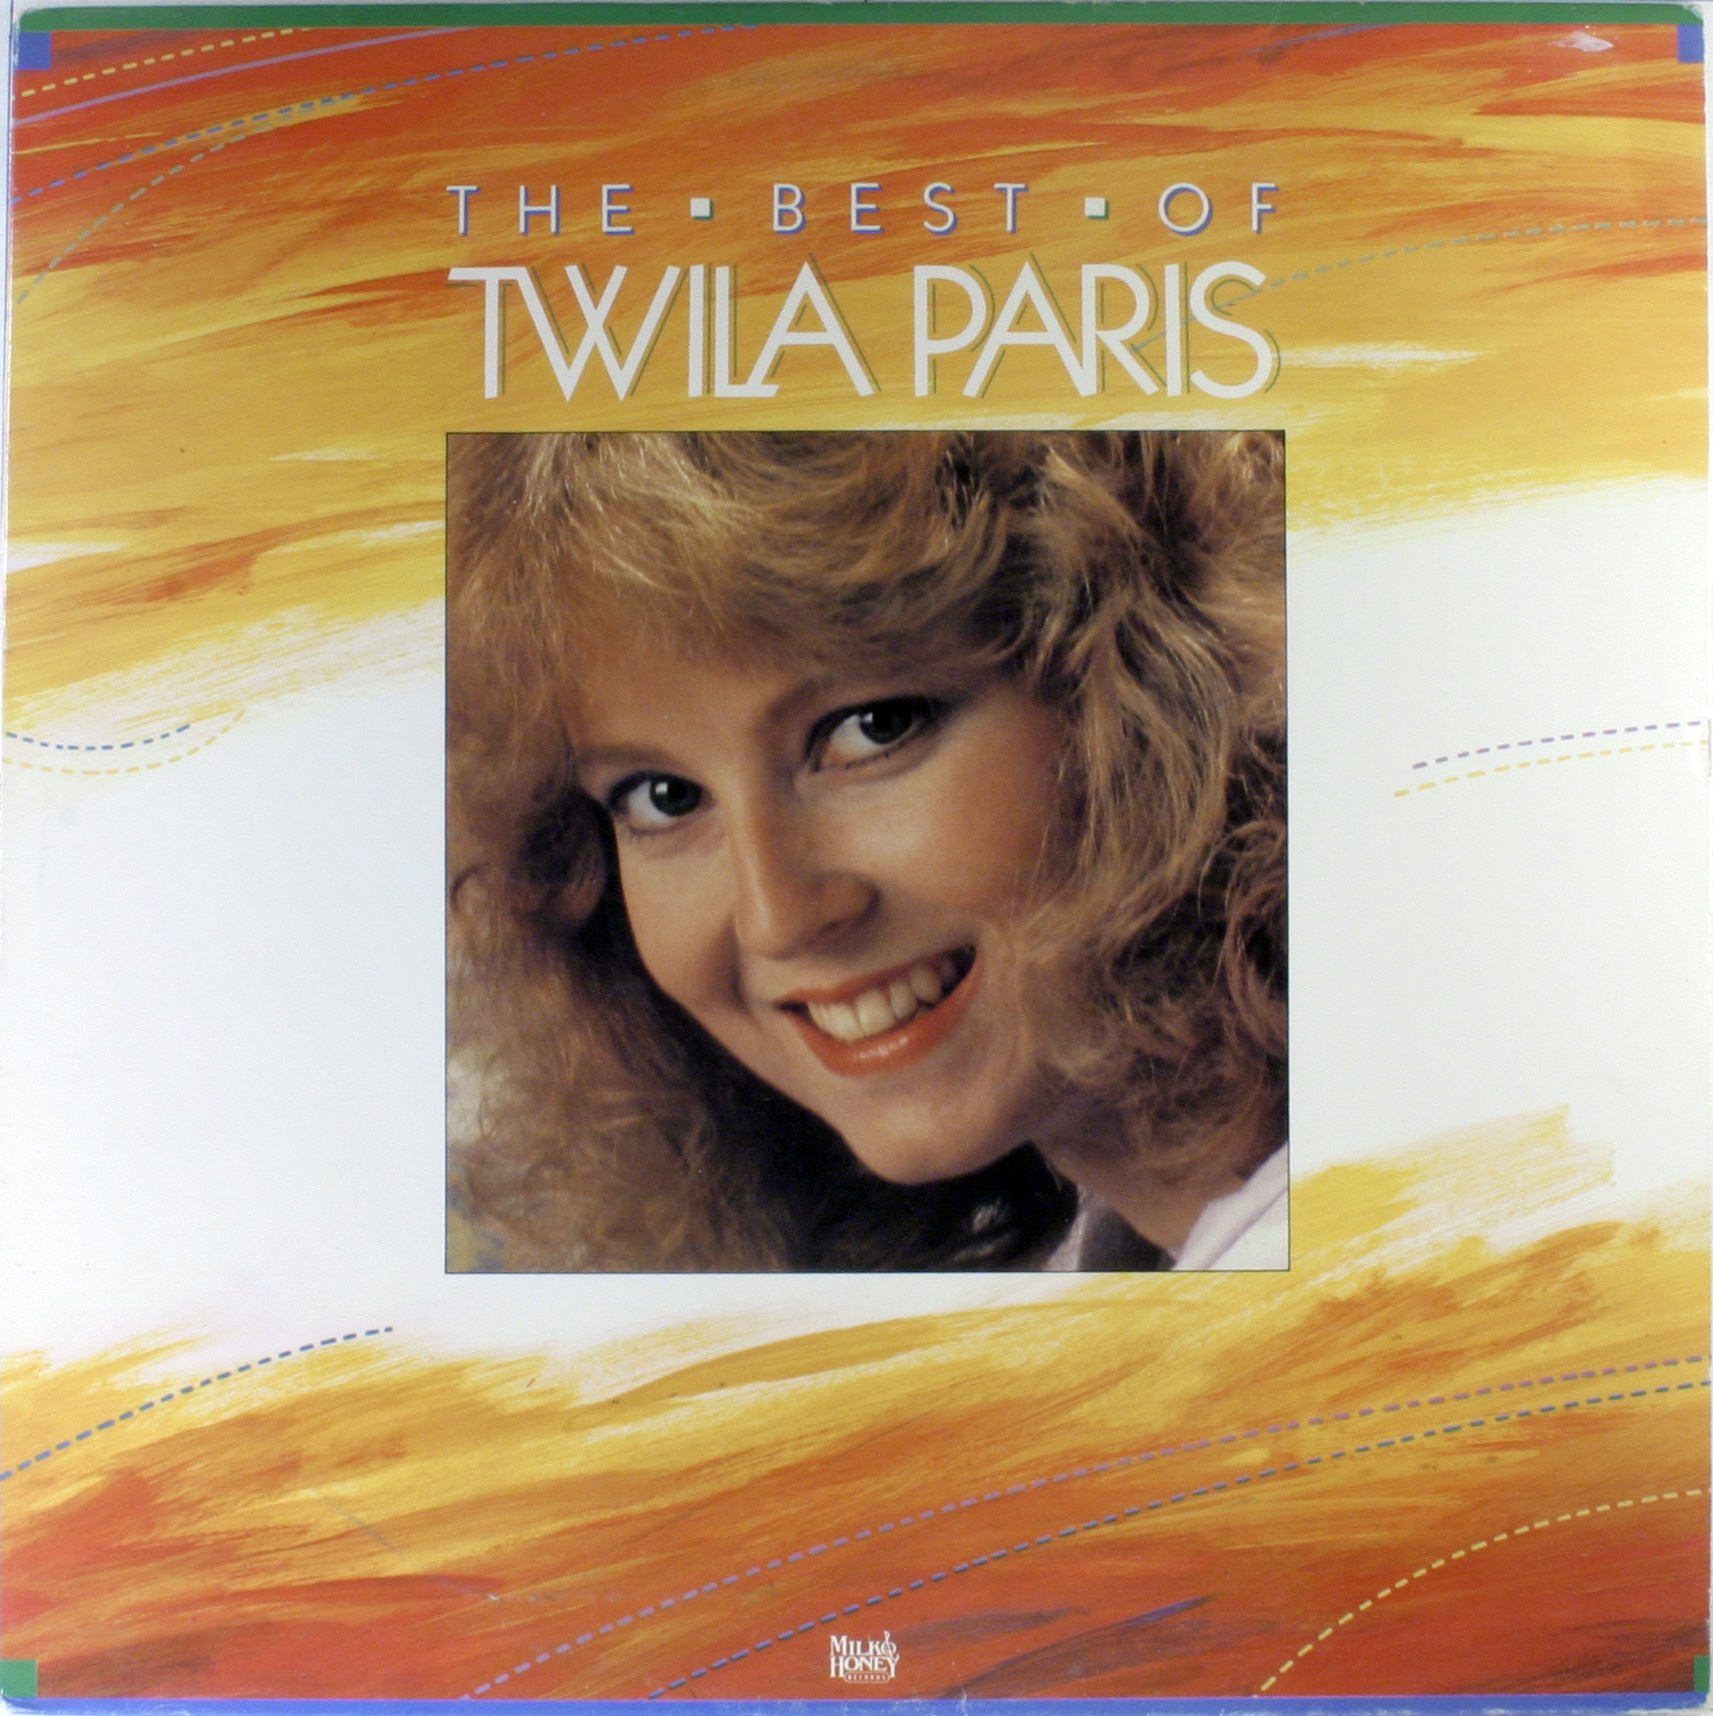 The Best Of Twila Paris